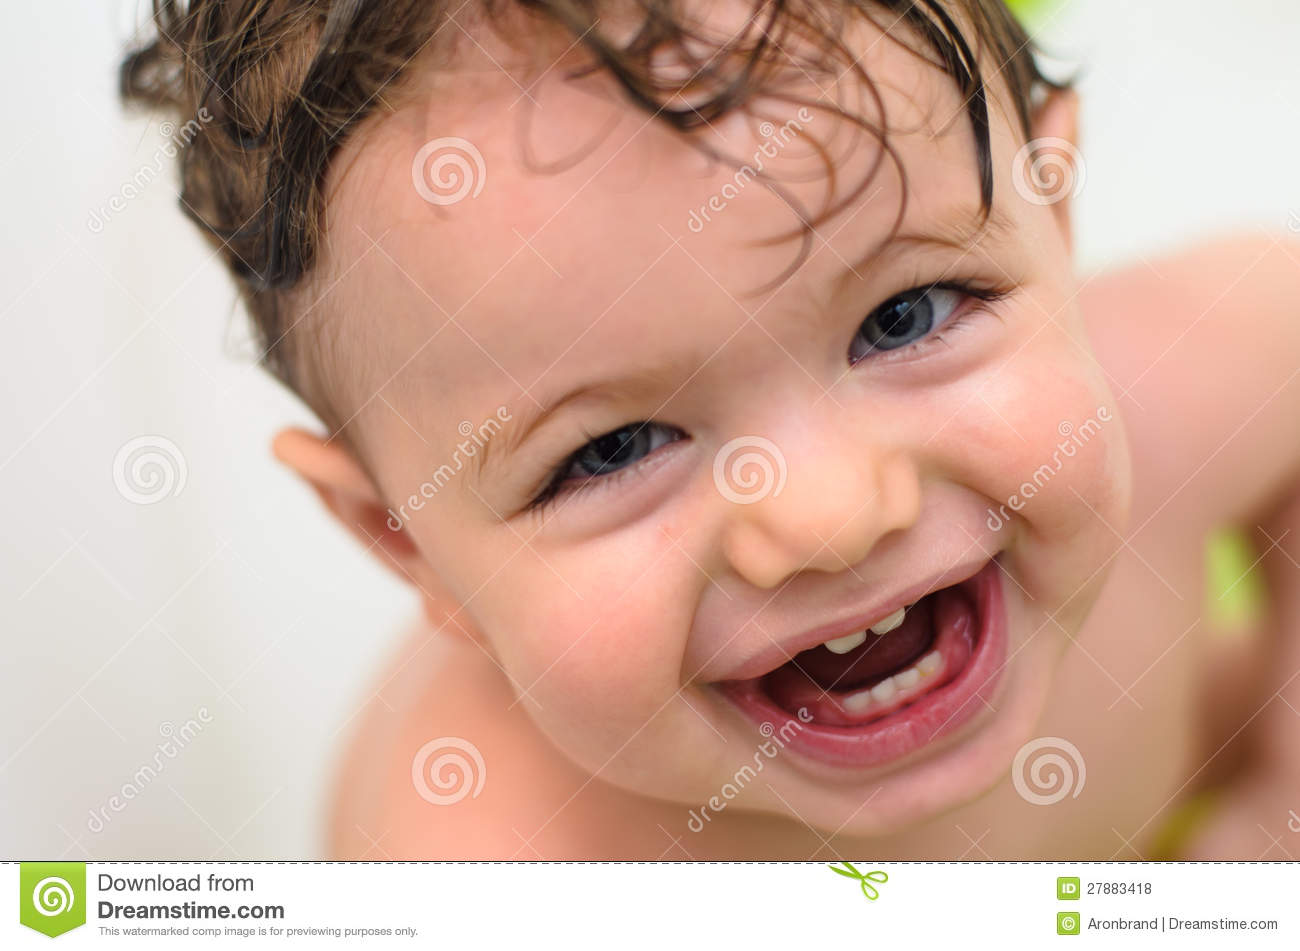 Cheerful Baby Taking A Bath Royalty Free Stock Photos - Image ...